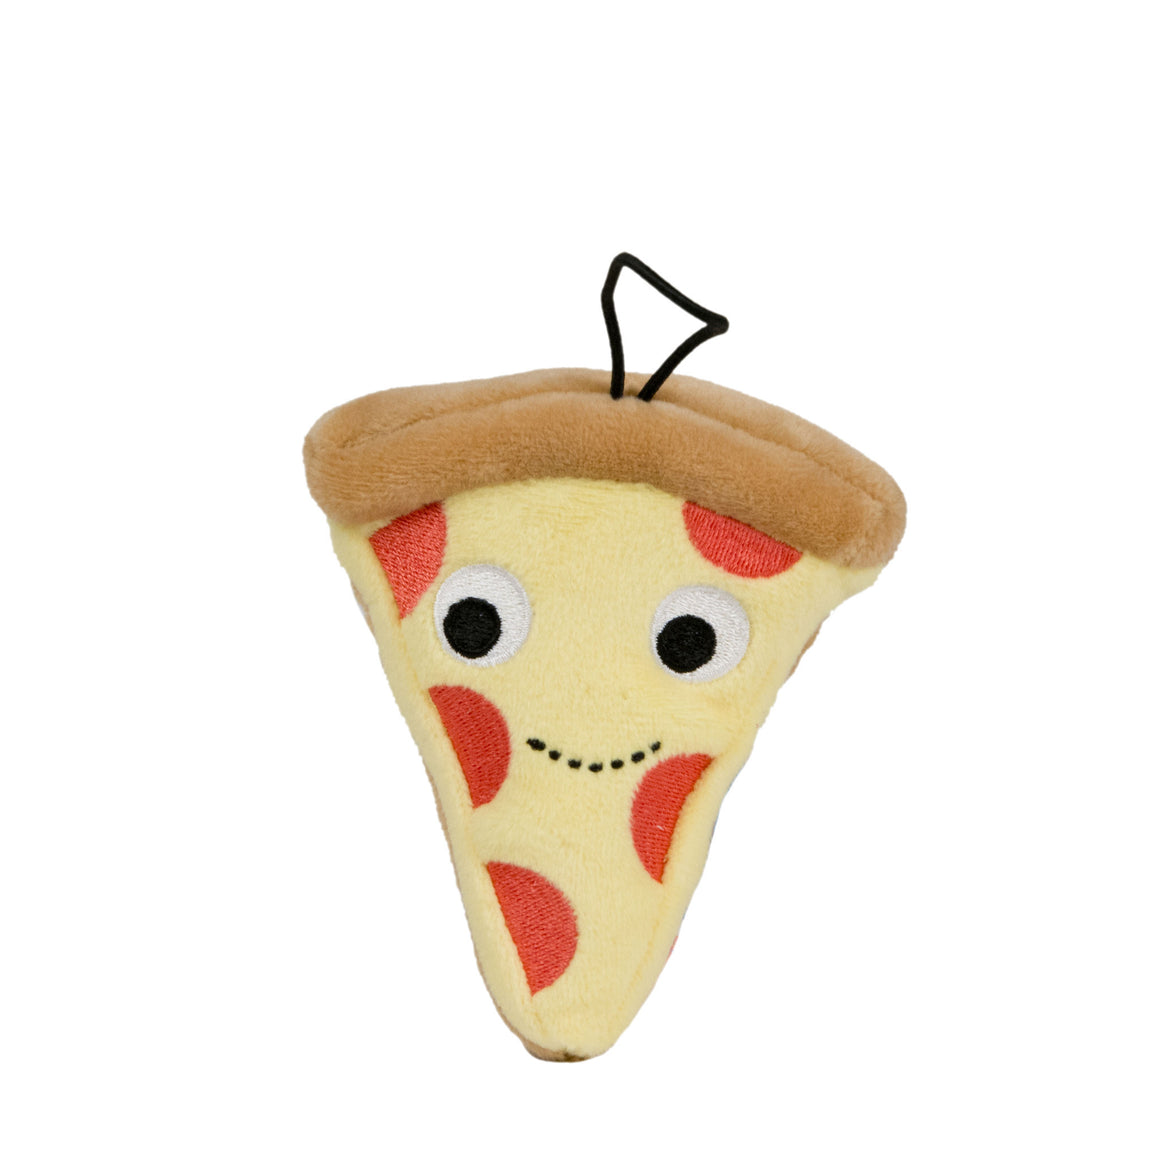 Yummy World Cheesy Pizza Pie Mini 4-inch Plush